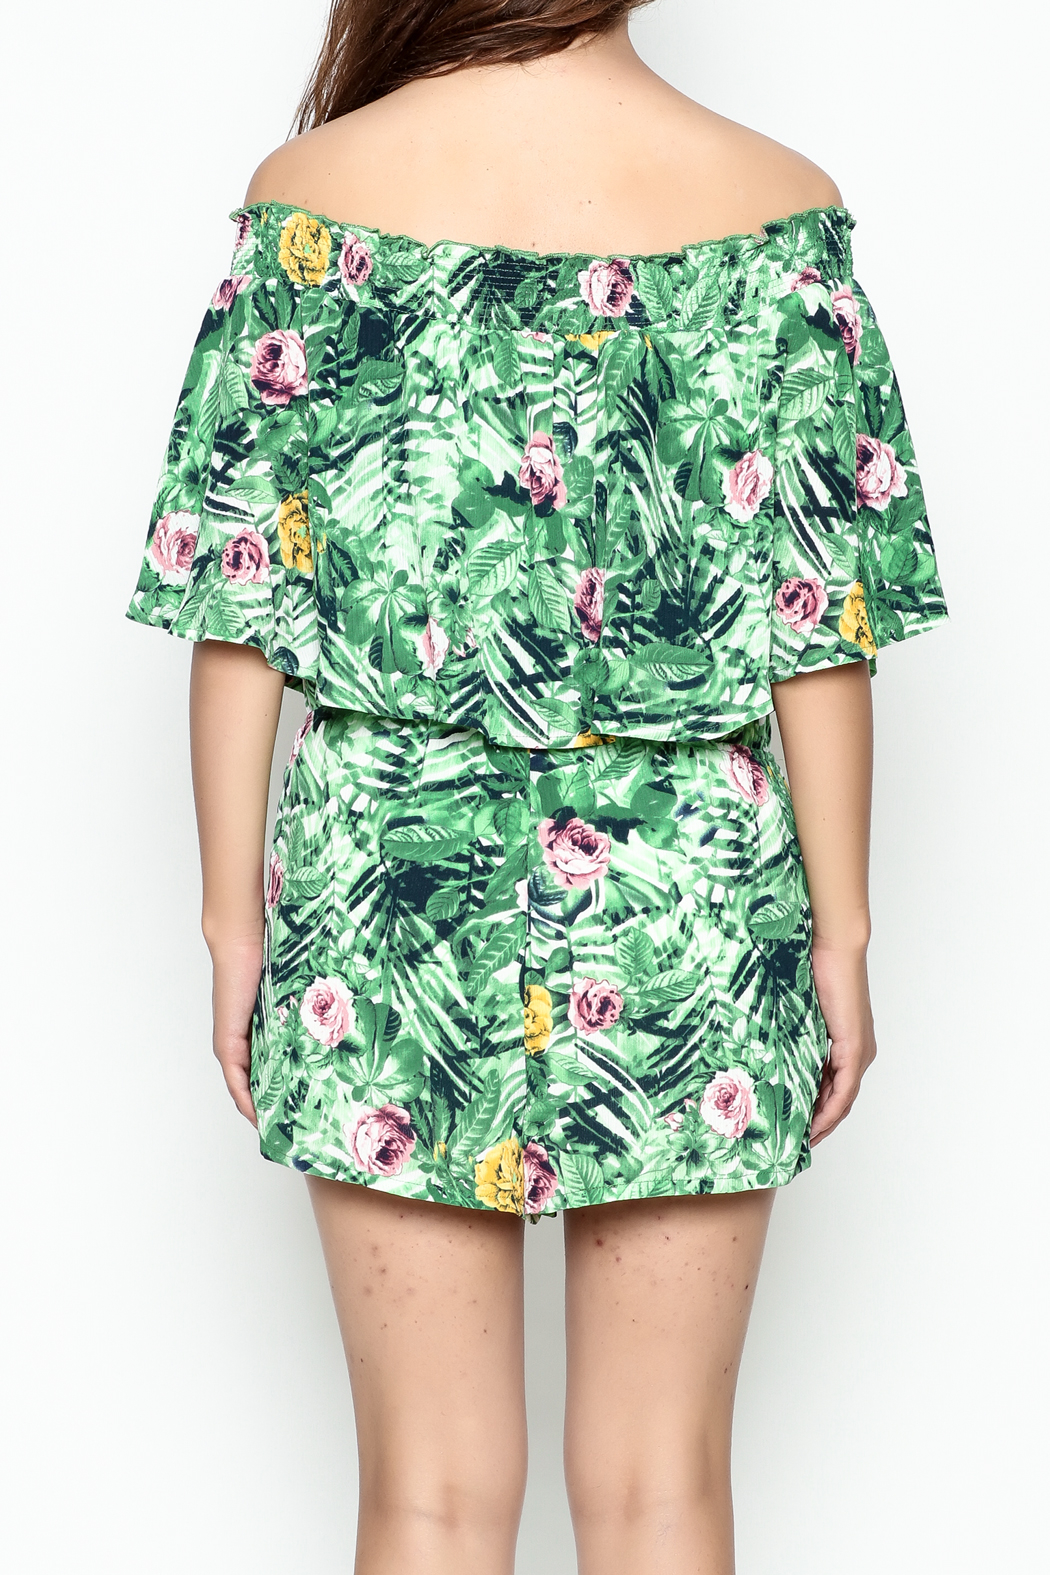 Izzy & Lola Tropical Newport Romper - Back Cropped Image